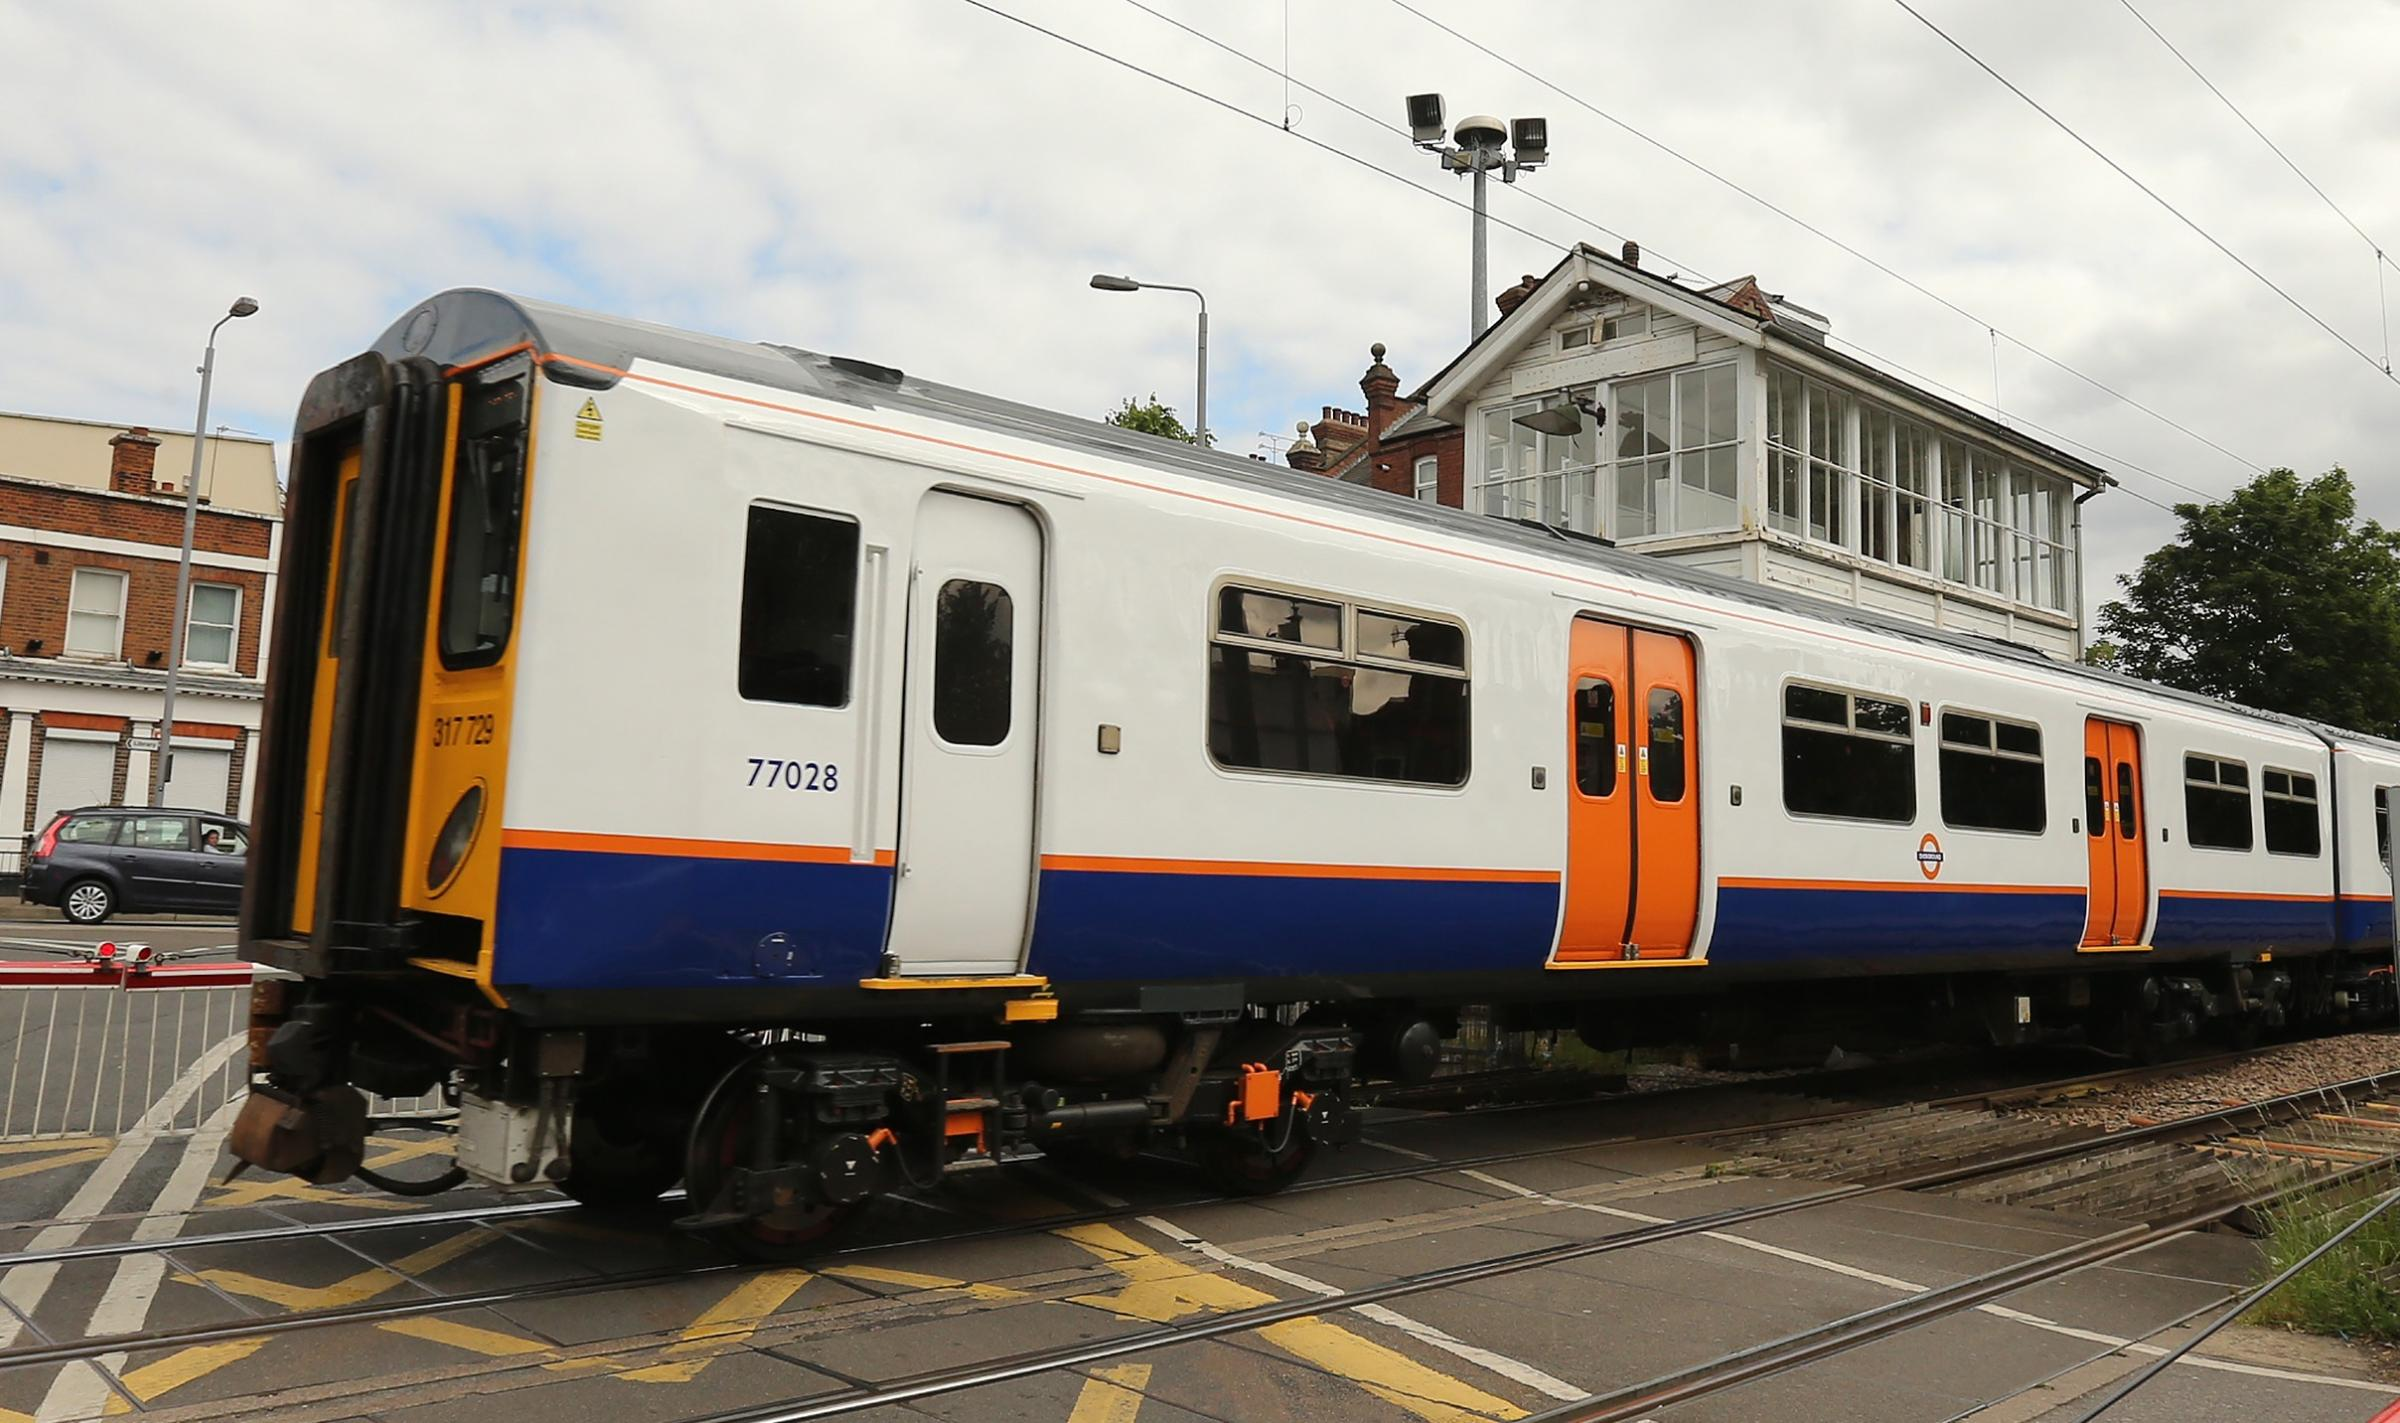 Delays on the Overground due to fault at Brockley